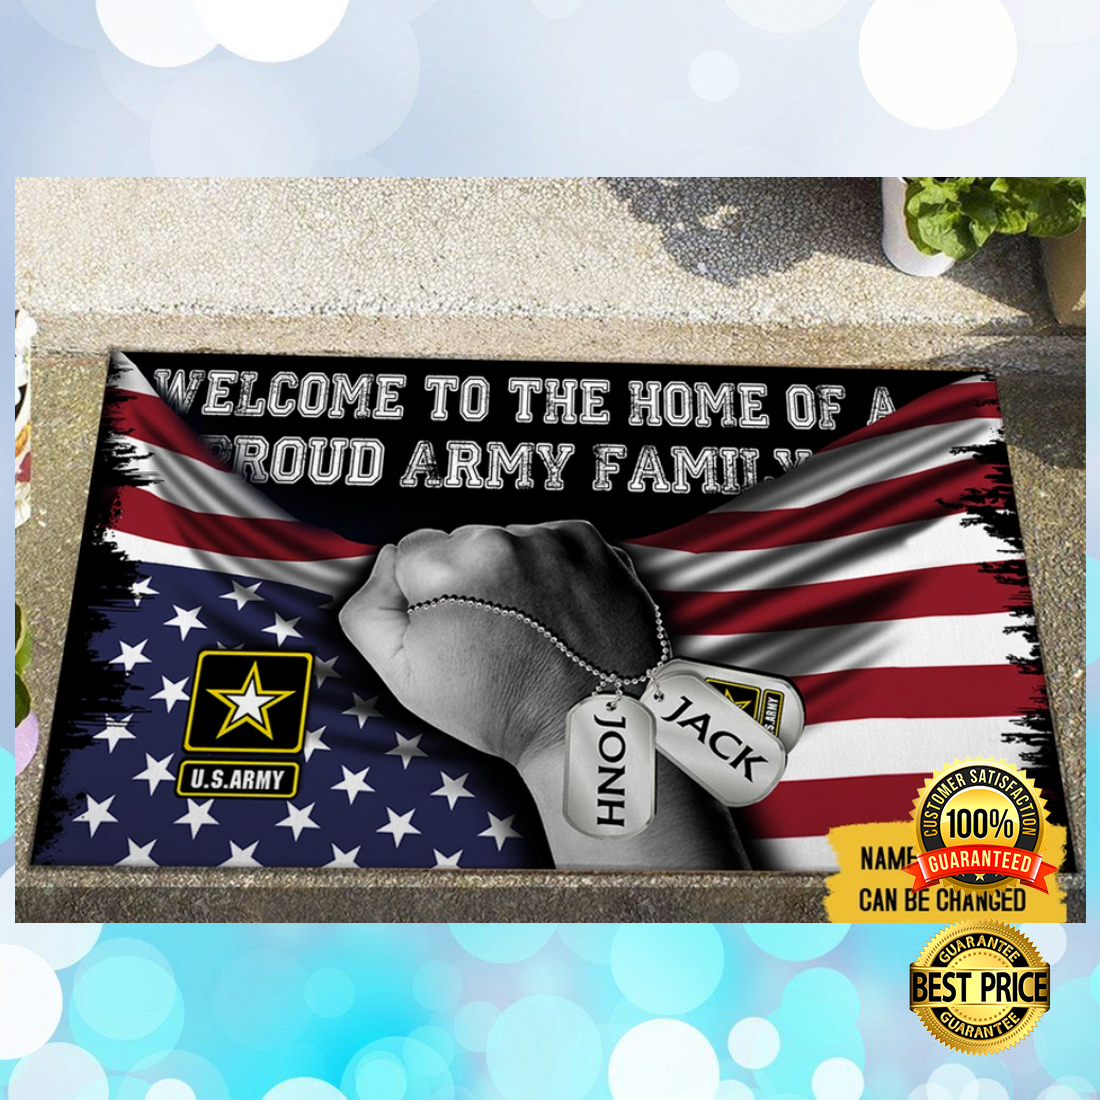 PERSONALIZED WELCOME TO HOME OF A PROUD ARMY FAMILY DOORMAT